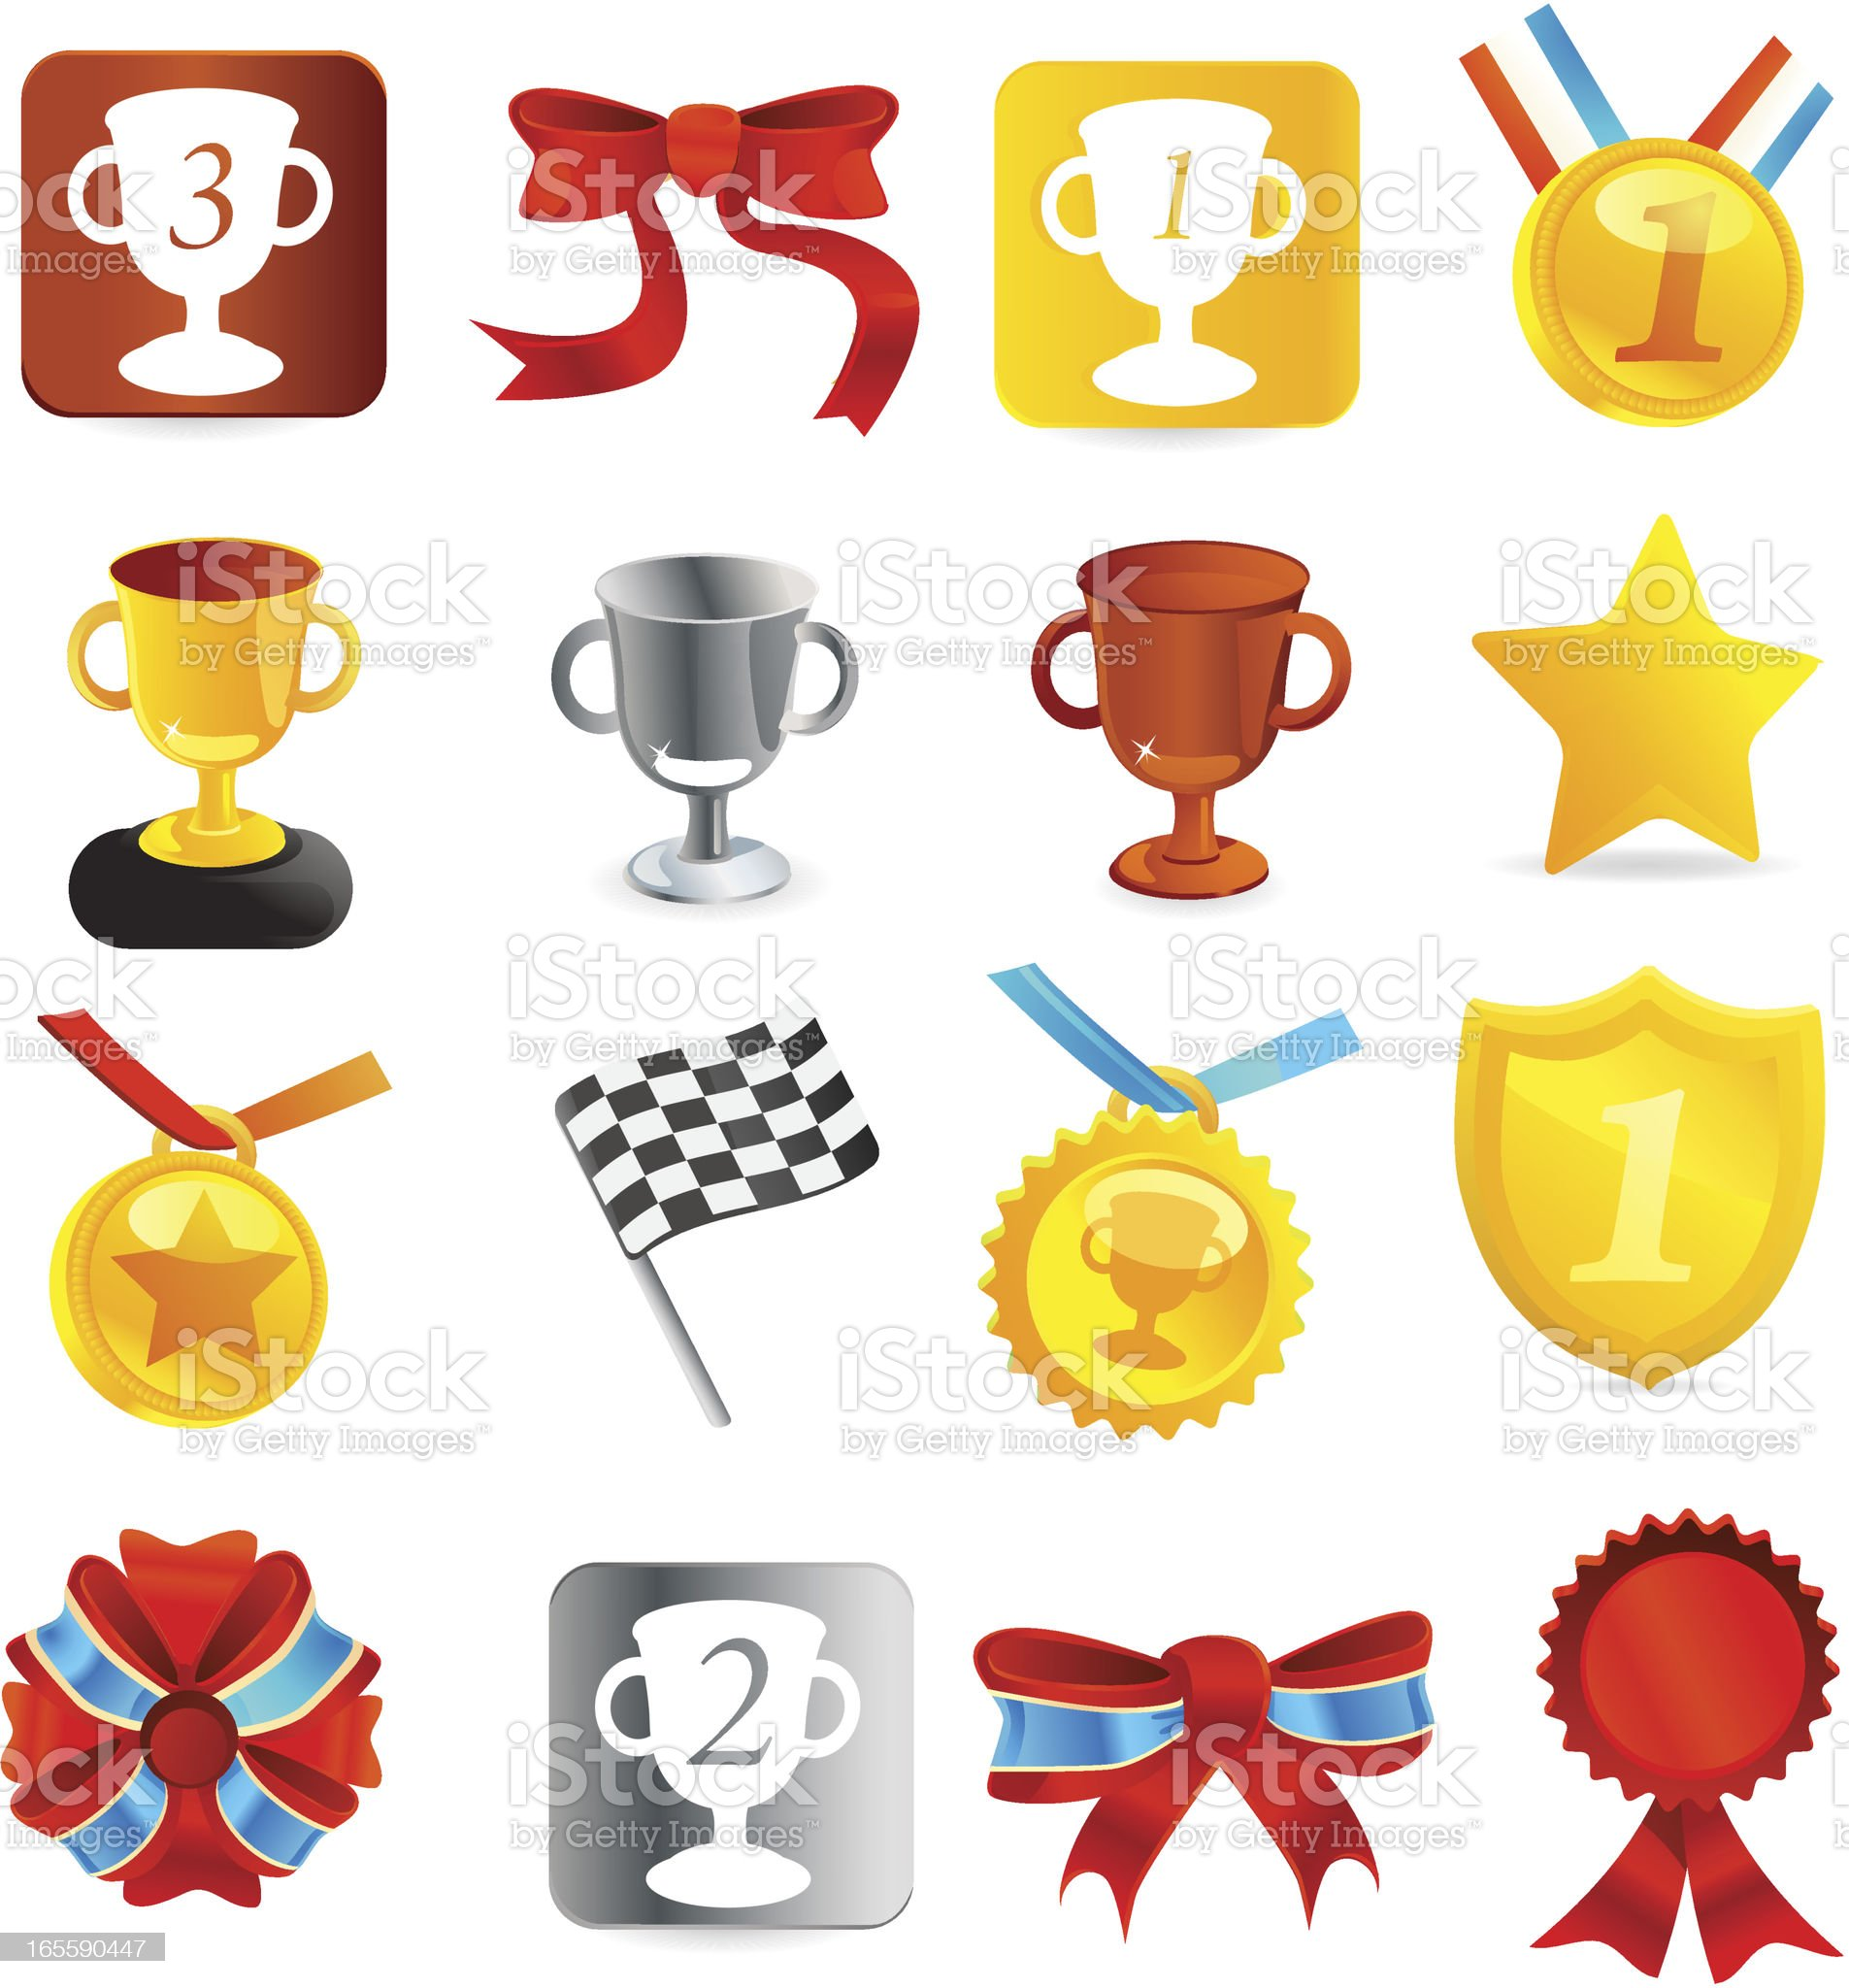 Medal & Tournament trophies Icons] royalty-free stock vector art